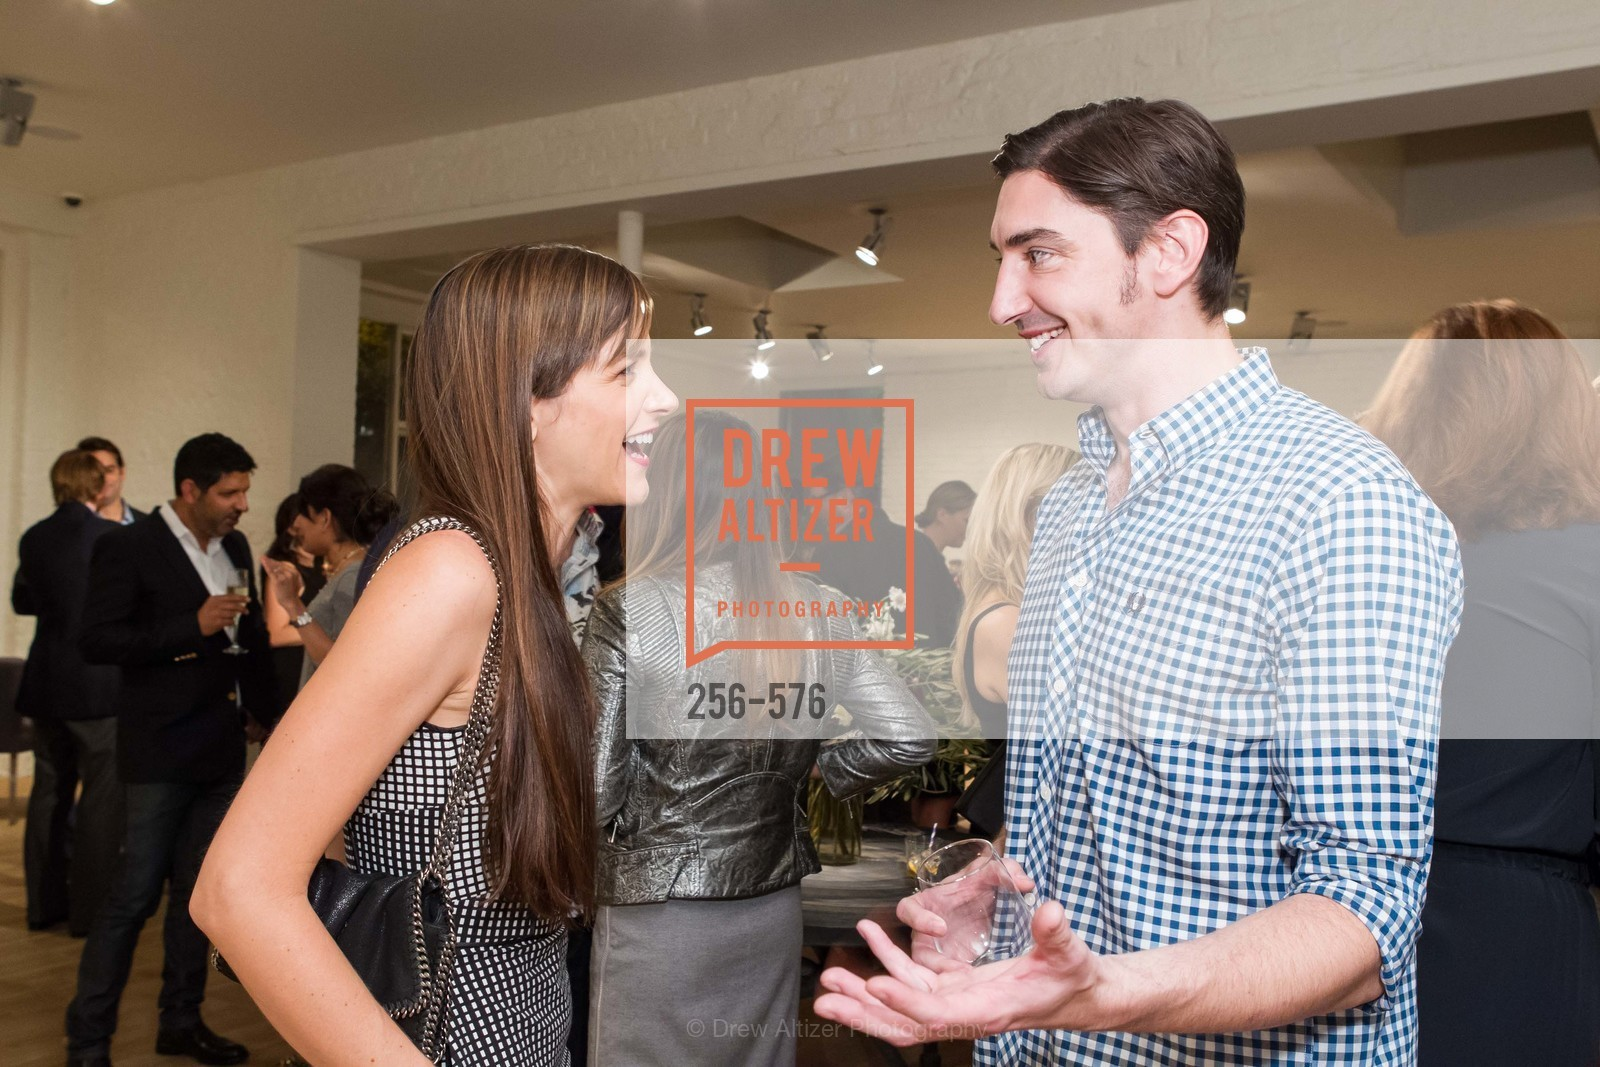 Darya Rose, Doug Dalton, SF FALL ANTIQUES SHOW Designer's Circle Cocktail Party at HEWN, US, September 23rd, 2014,Drew Altizer, Drew Altizer Photography, full-service agency, private events, San Francisco photographer, photographer california